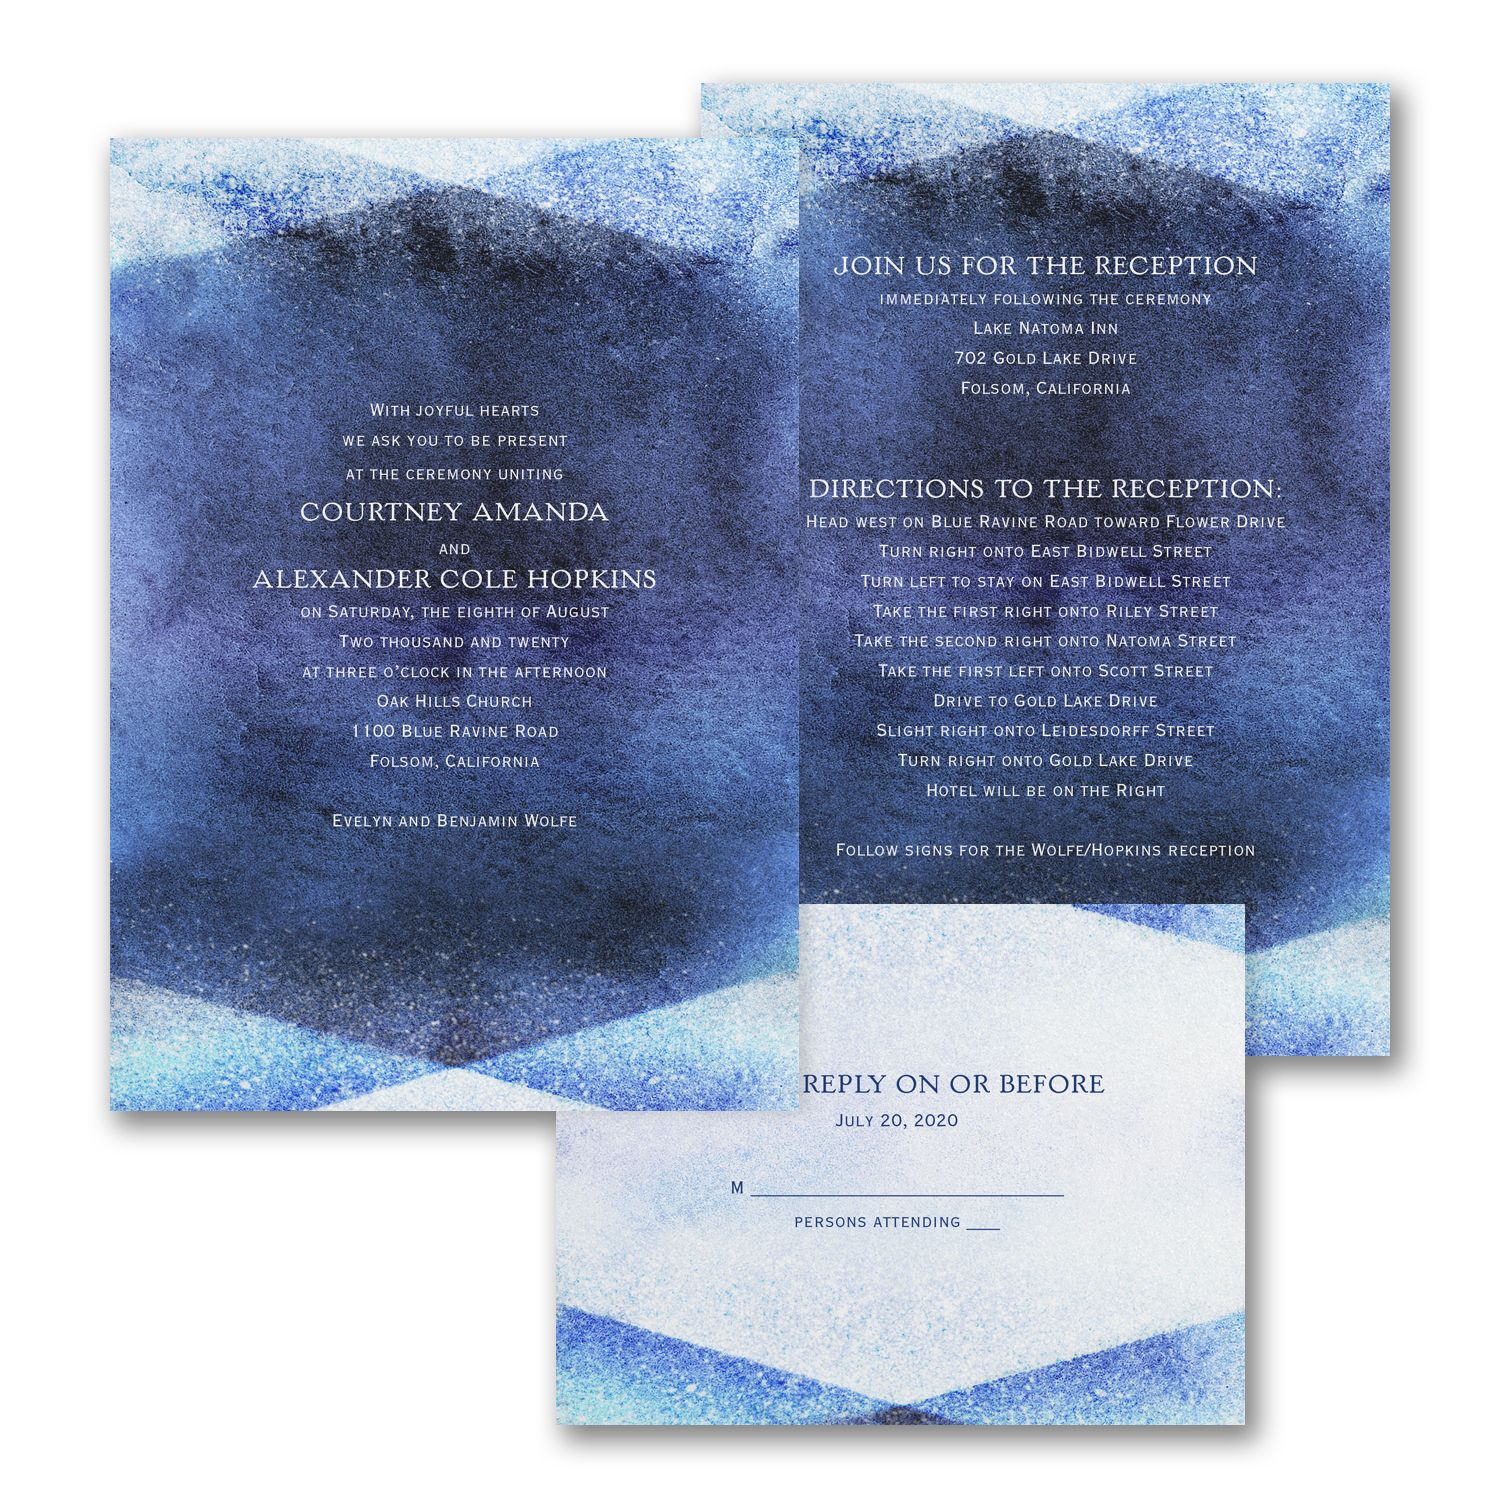 watercolor gem valstyle invitation navy white 30 40 off